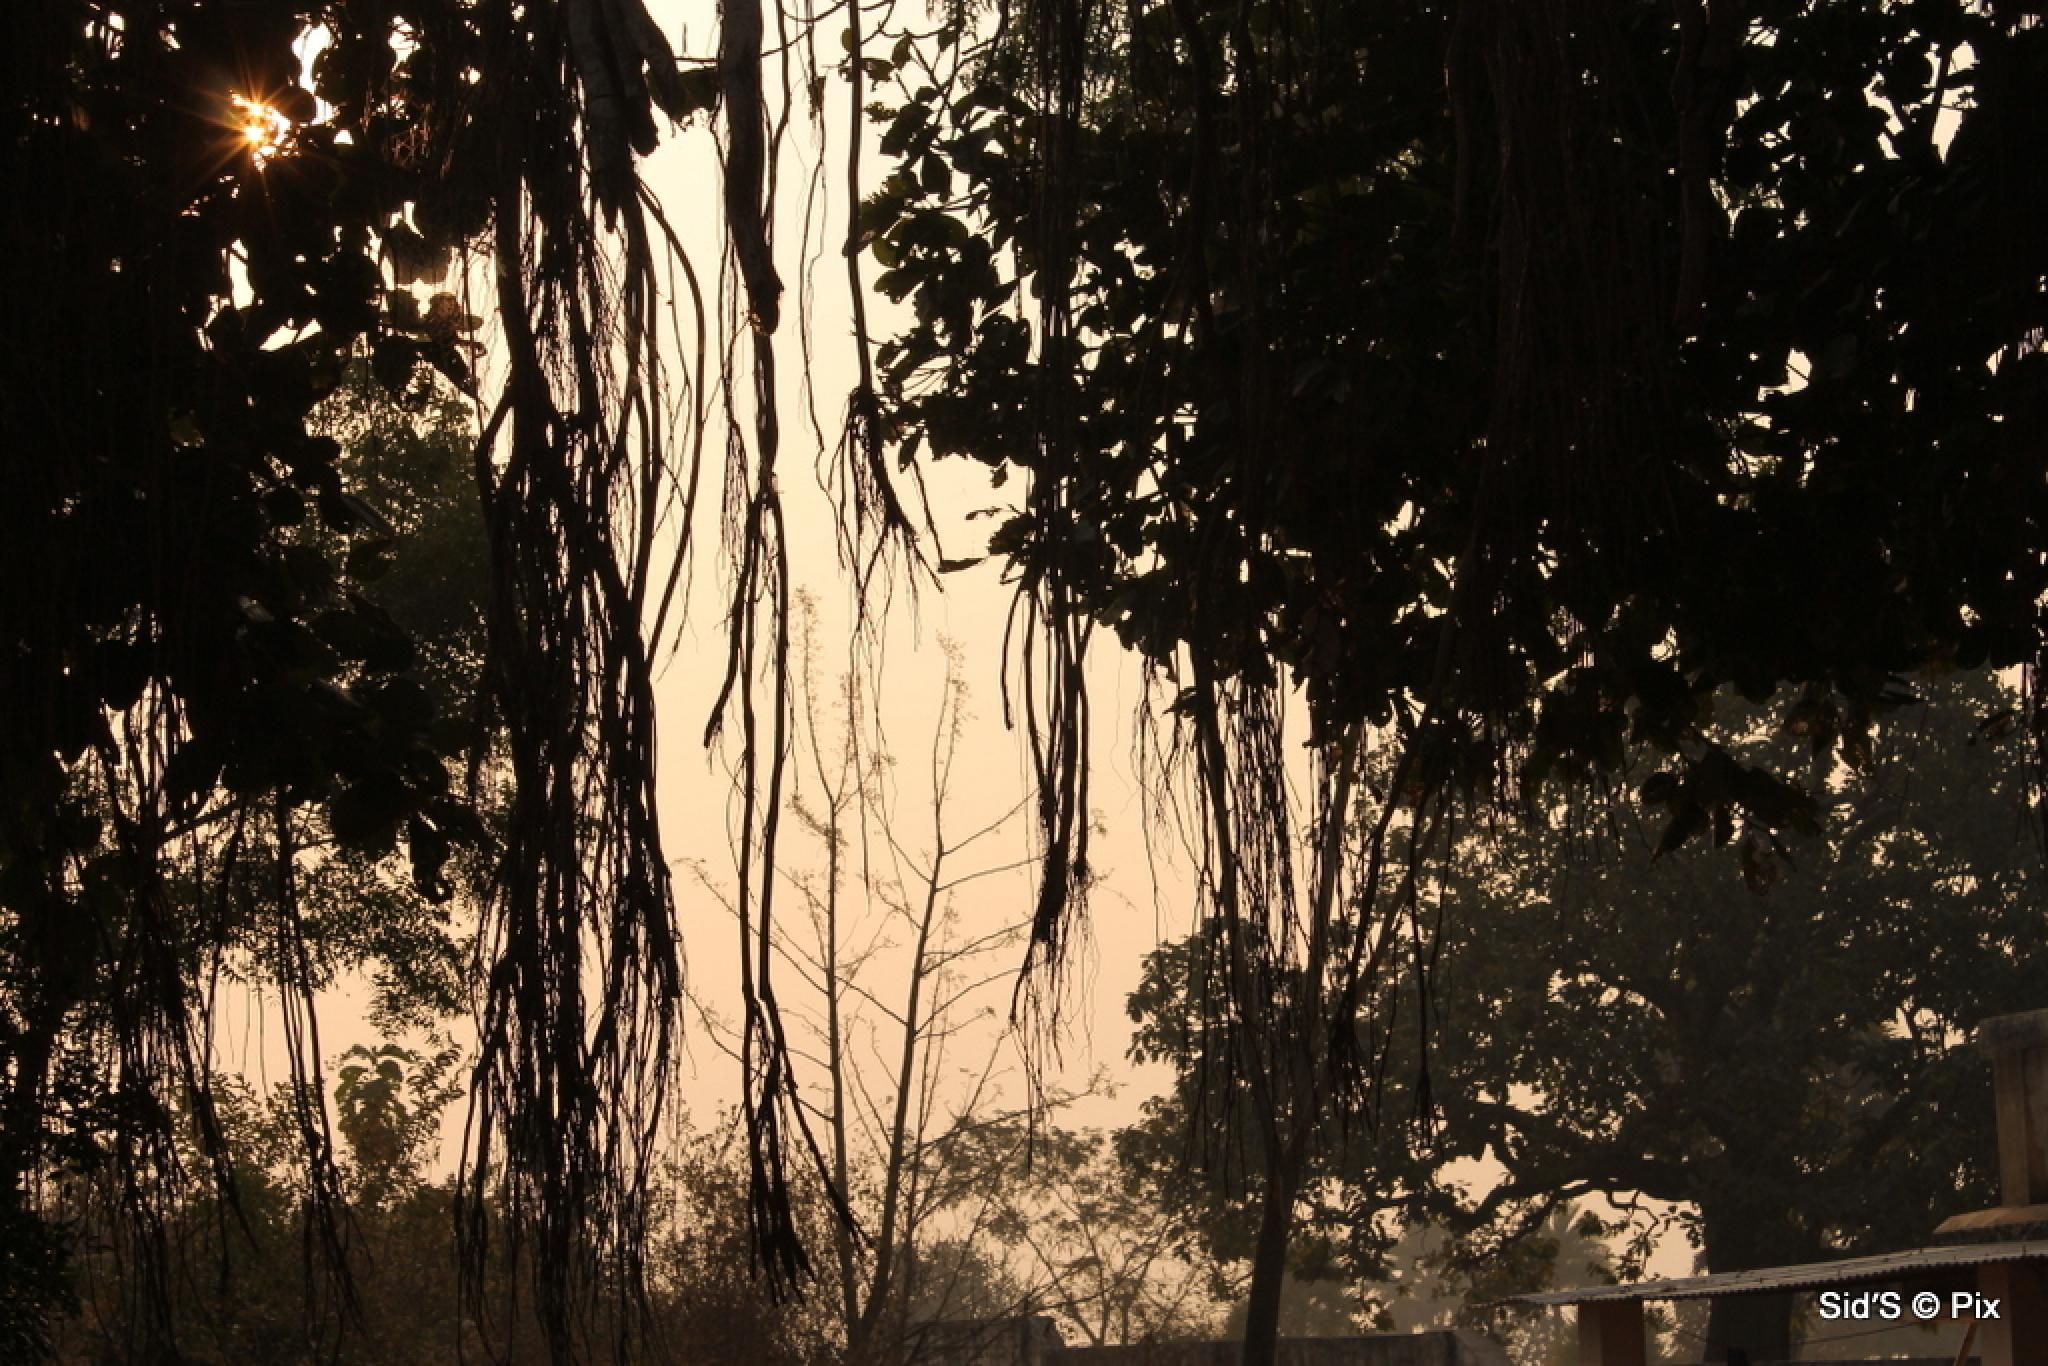 In the shade of the banyan tree by Siddharth Sanyal